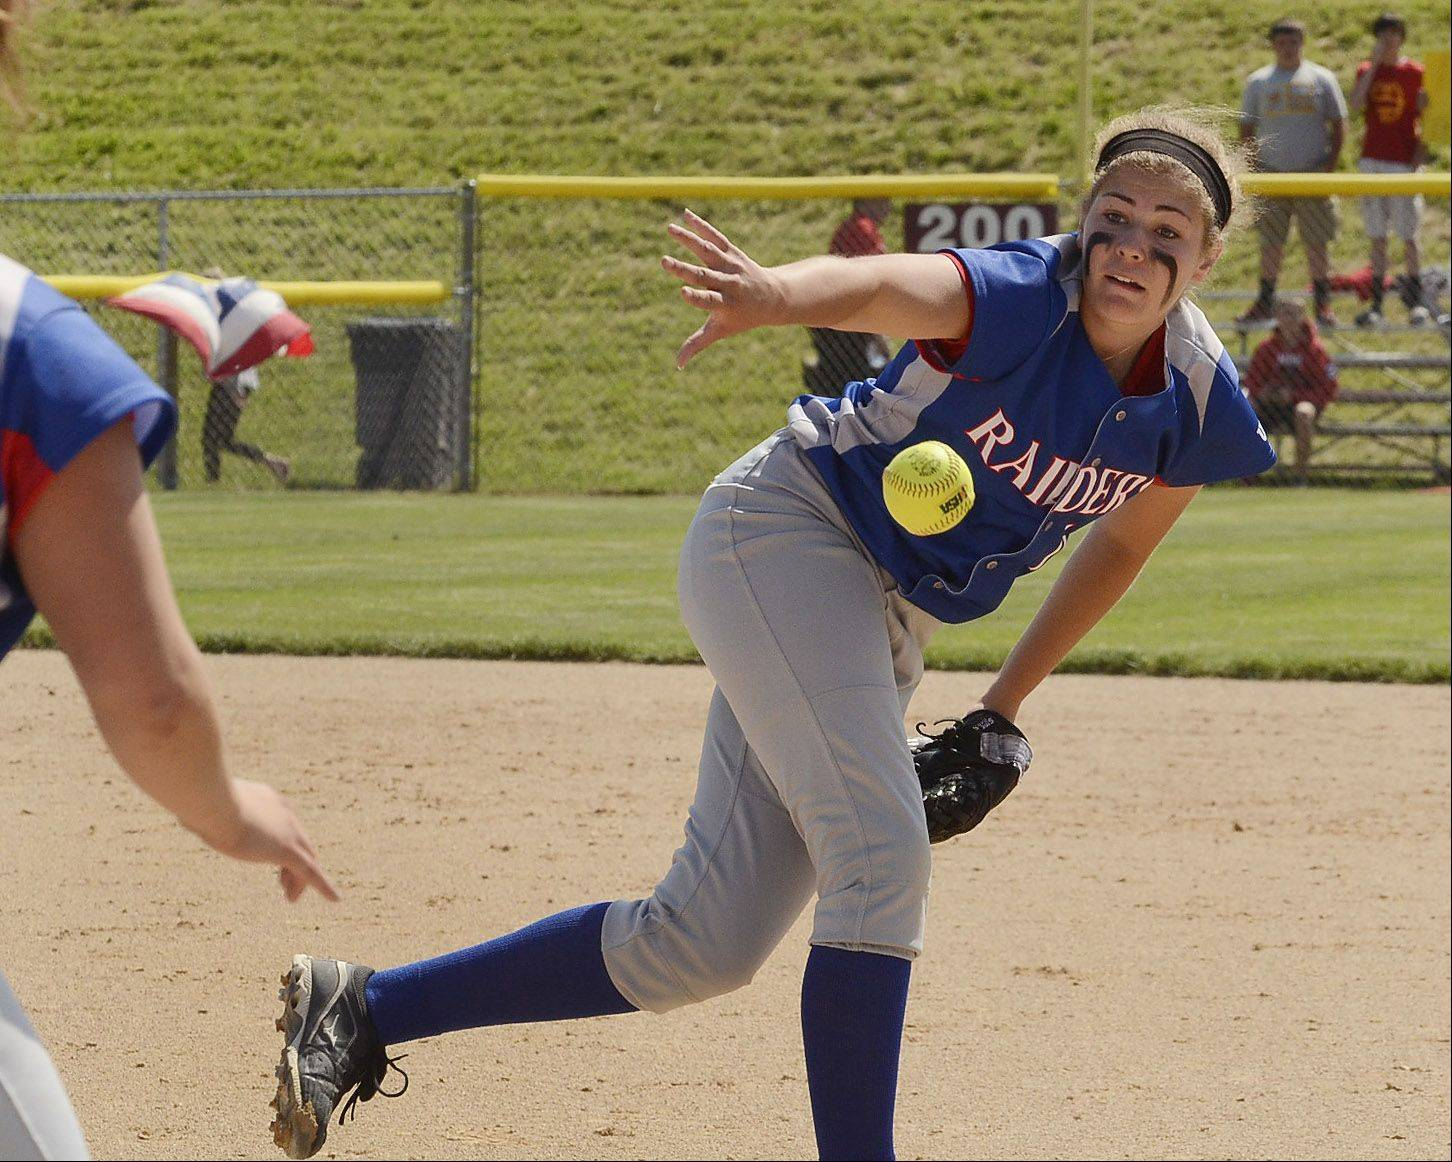 Glenbard South pitcher Jane Trzaska flips the ball to Danielle Scarpiniti in the 2nd inning of the Class 3A state semifinal between Glenbard South and Tinley Park.